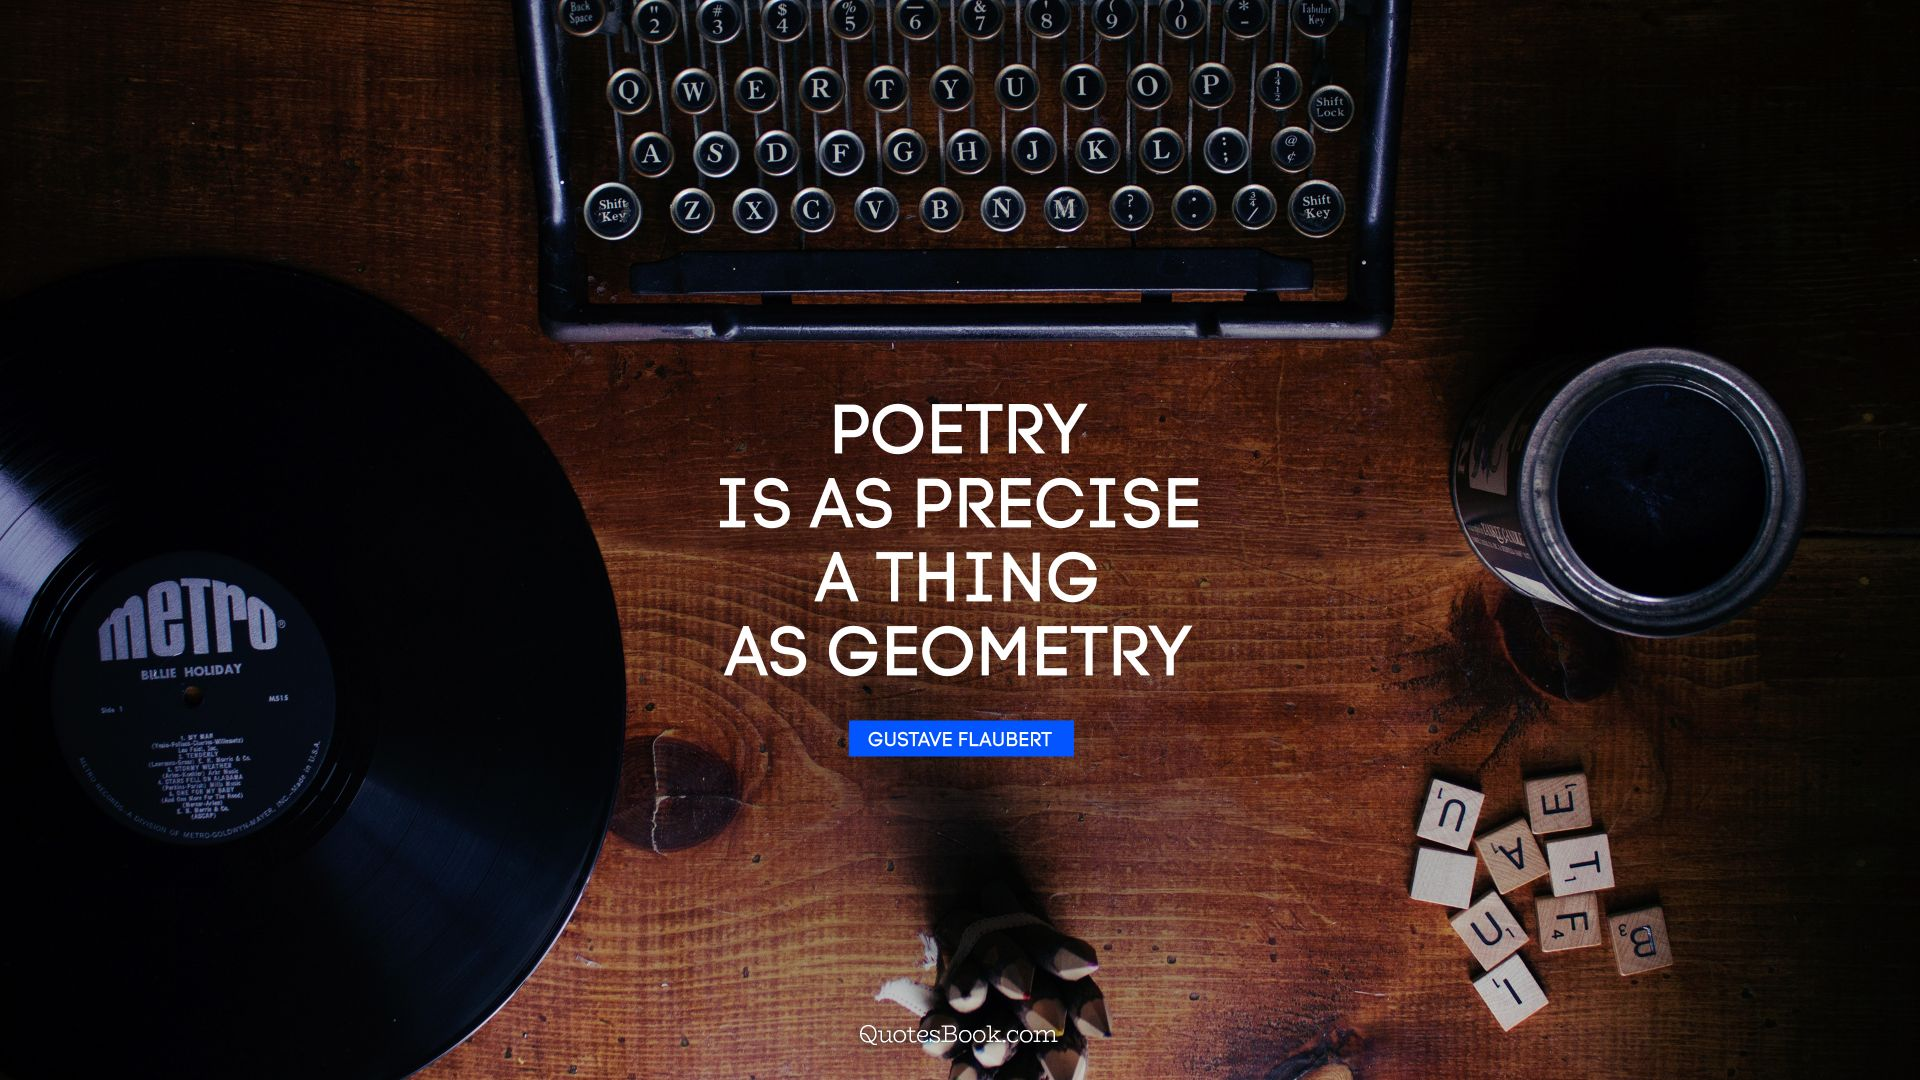 Poetry is as precise a thing as geometry. - Quote by Gustave Flaubert